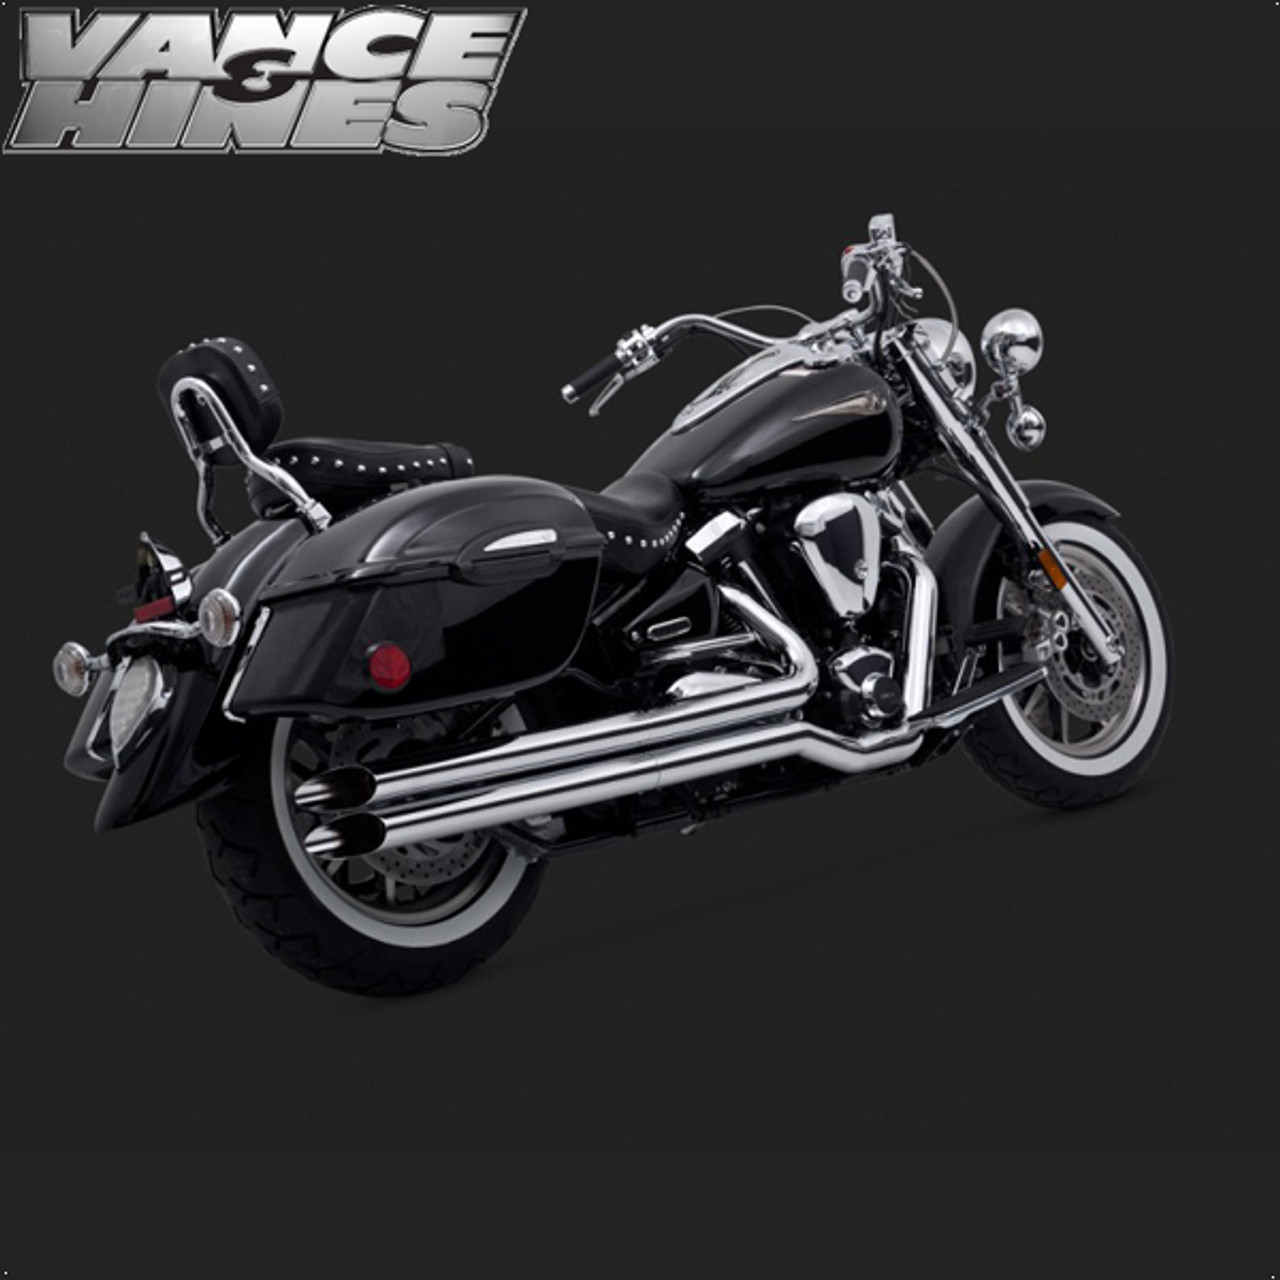 Vance & Hines Longshot Full Exhaust System Yamaha XV1600 Road Star 99-07